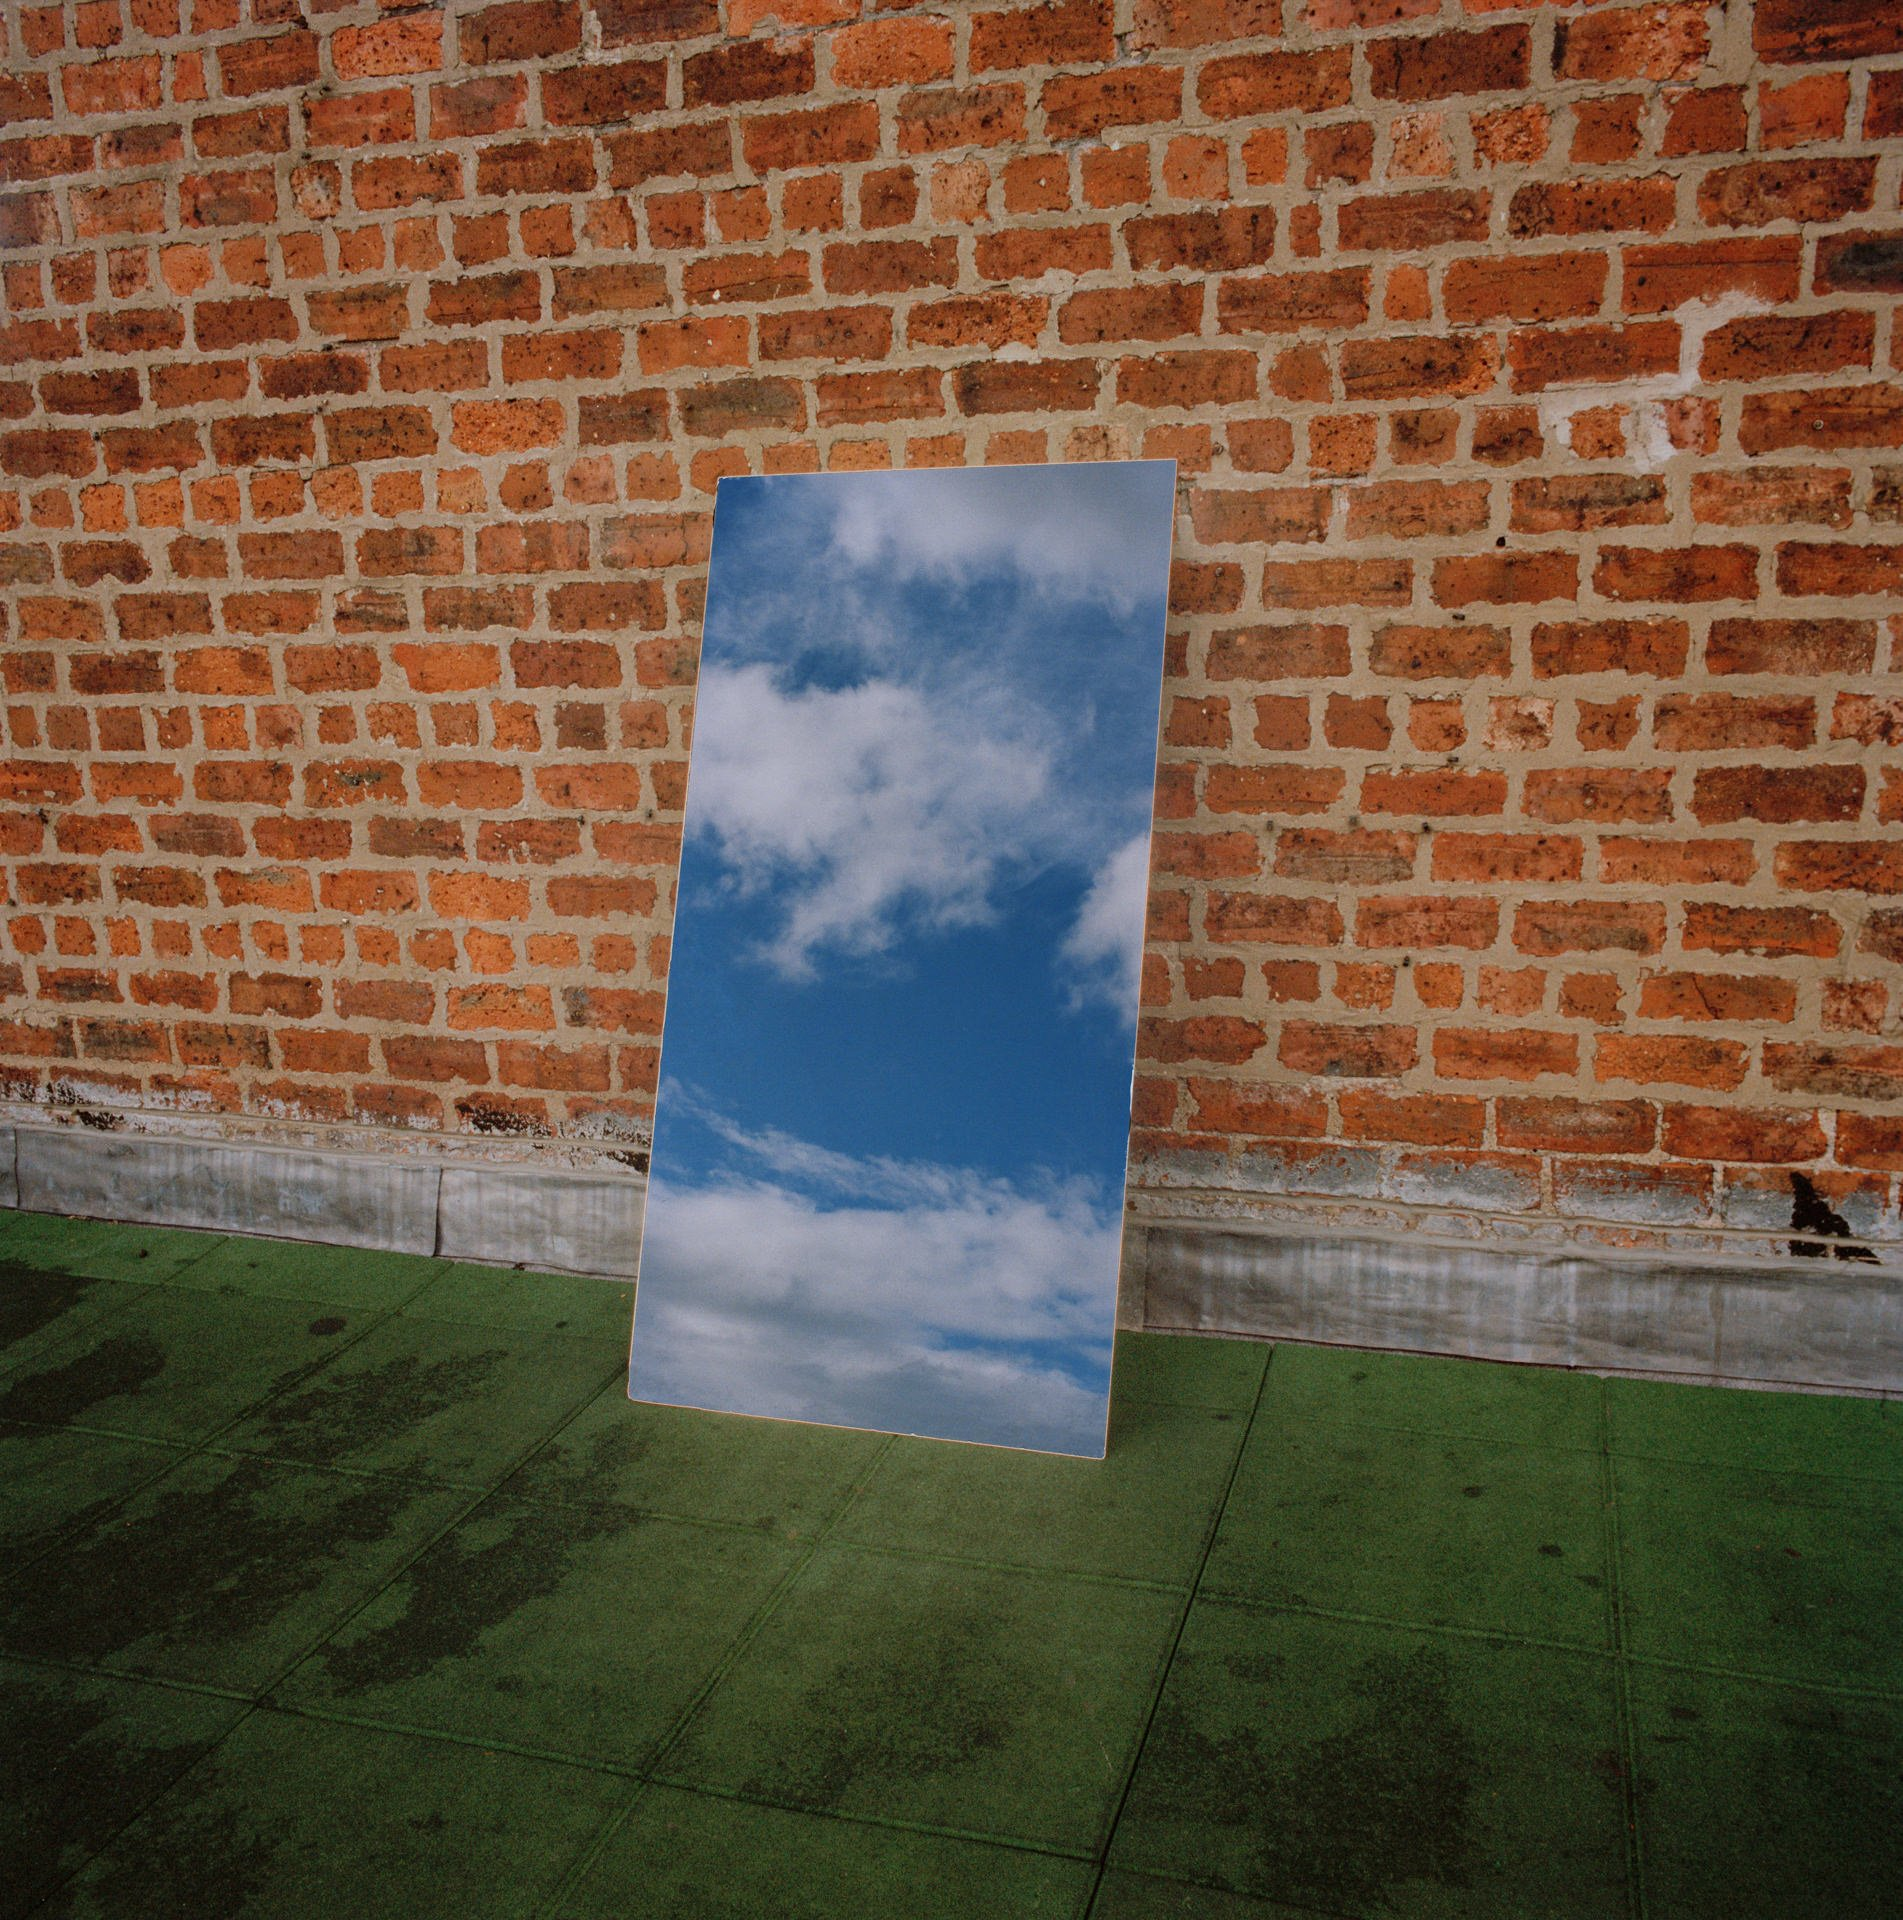 A tall, portrait mirror leans against a red brick wall and sits on astro turf, reflecting the blue sky and white puffy clouds